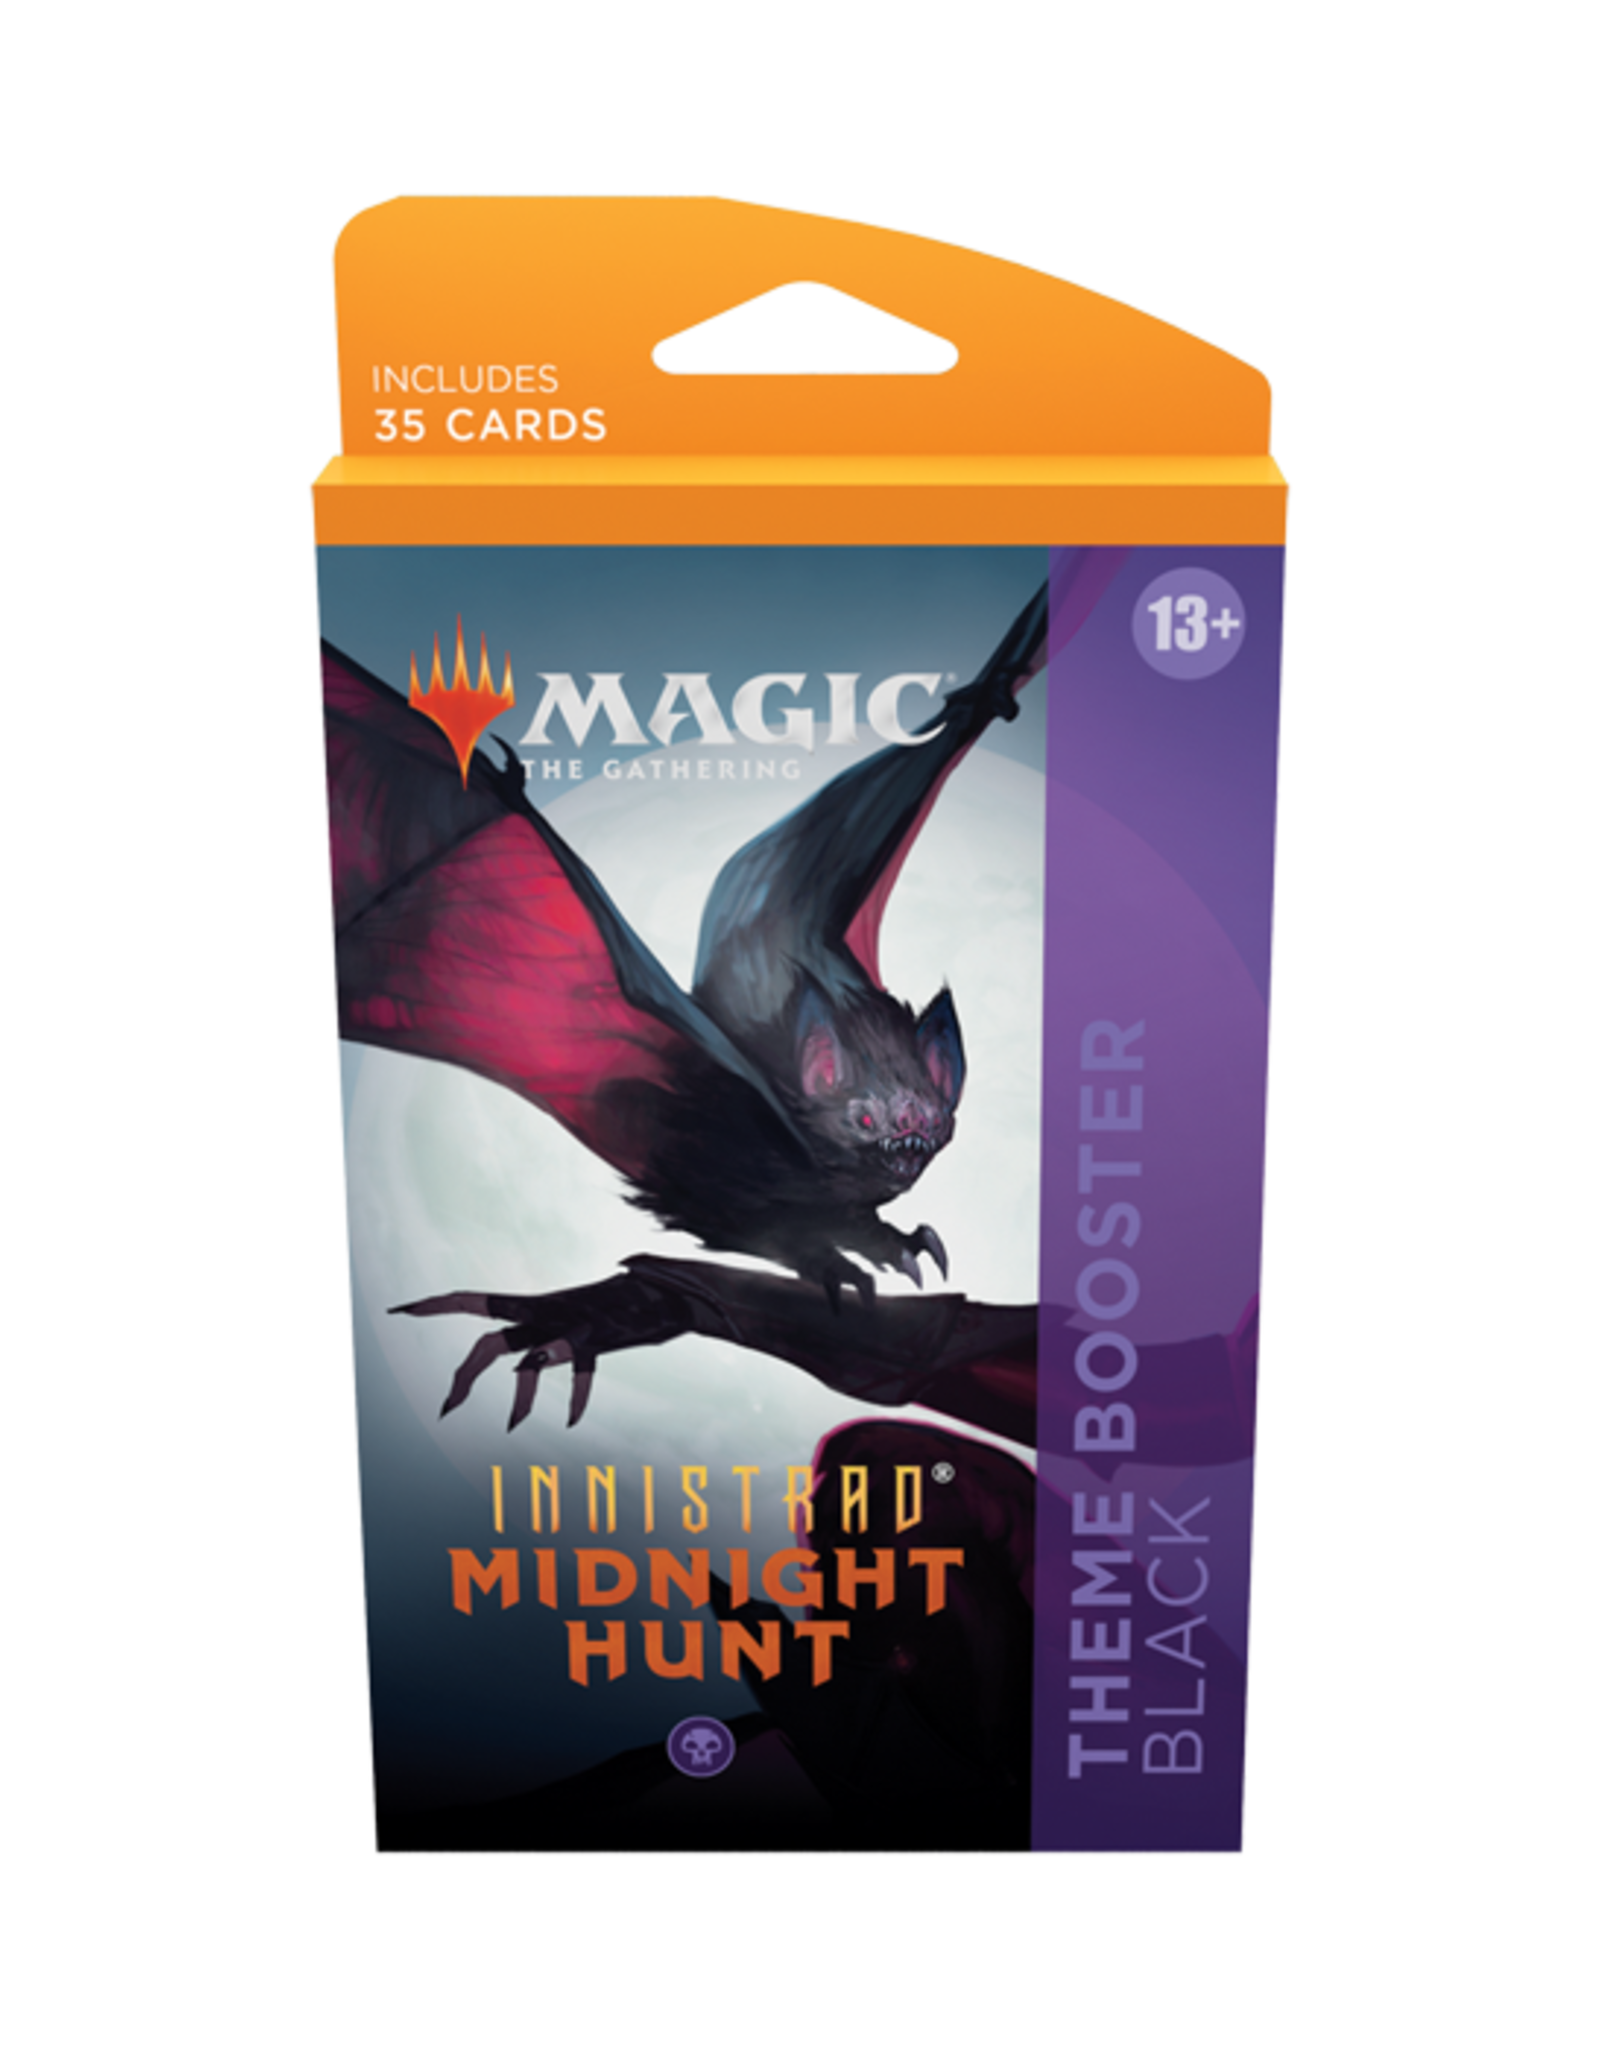 Magic: The Gathering Magic: The Gathering - Innistrad: Midnight Hunt - Theme Booster -